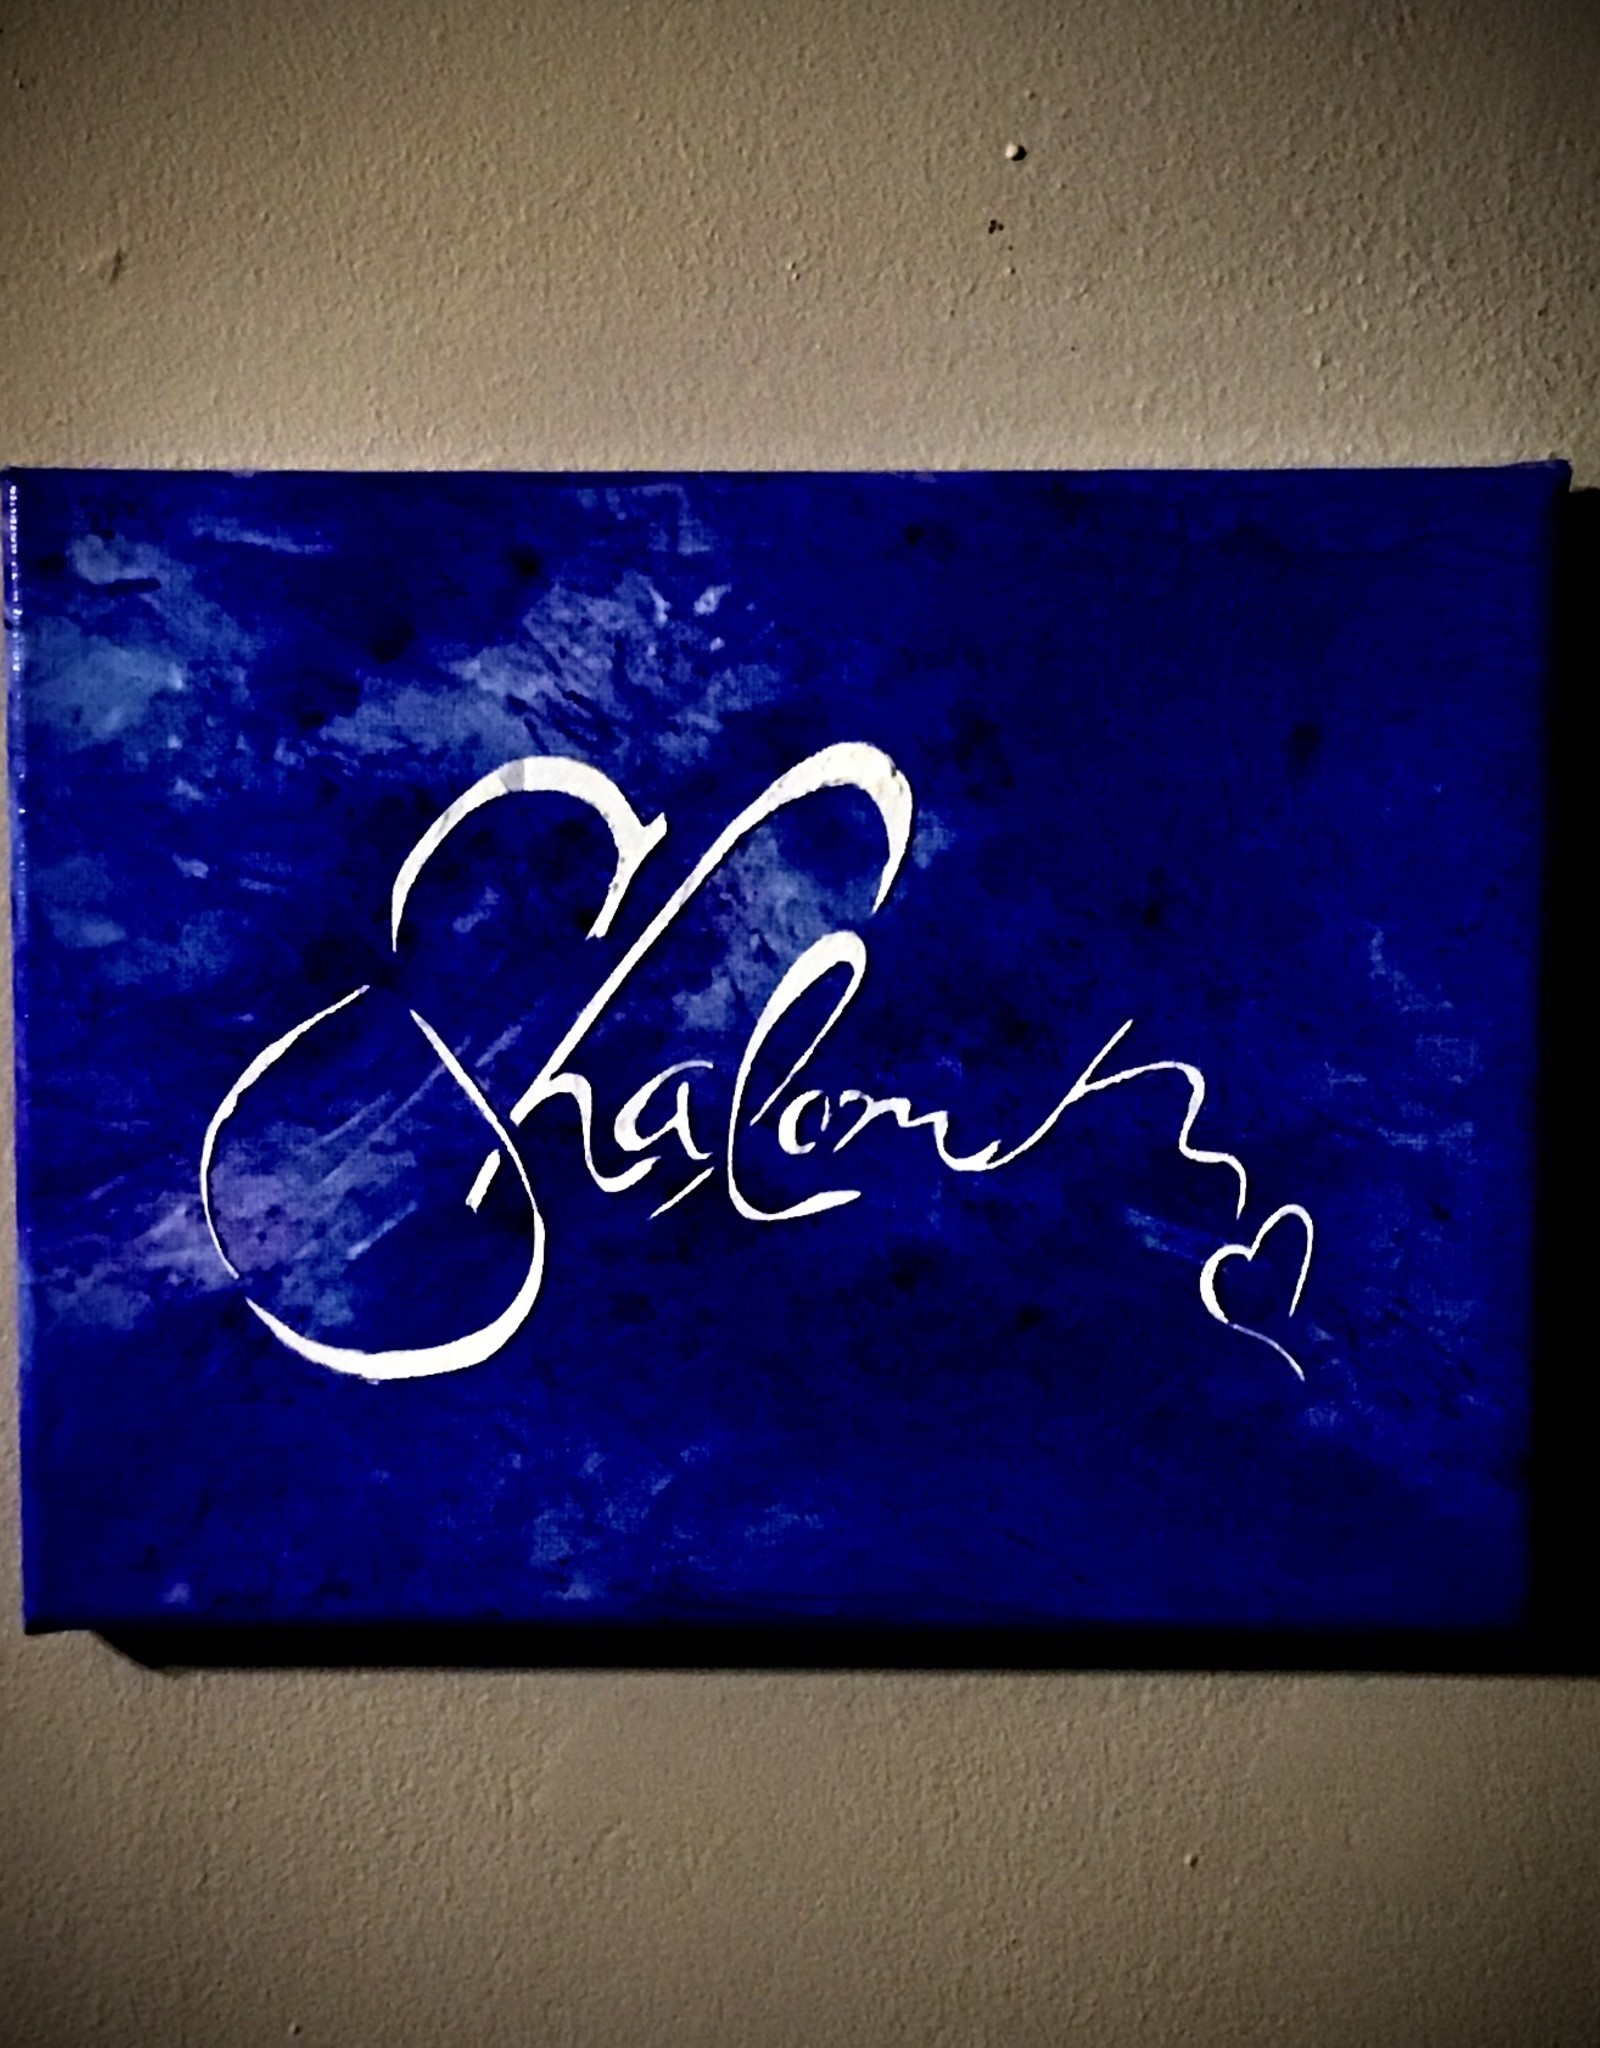 Chaipainter Shalom painting. Original artwork. A greeting of peace and being whole